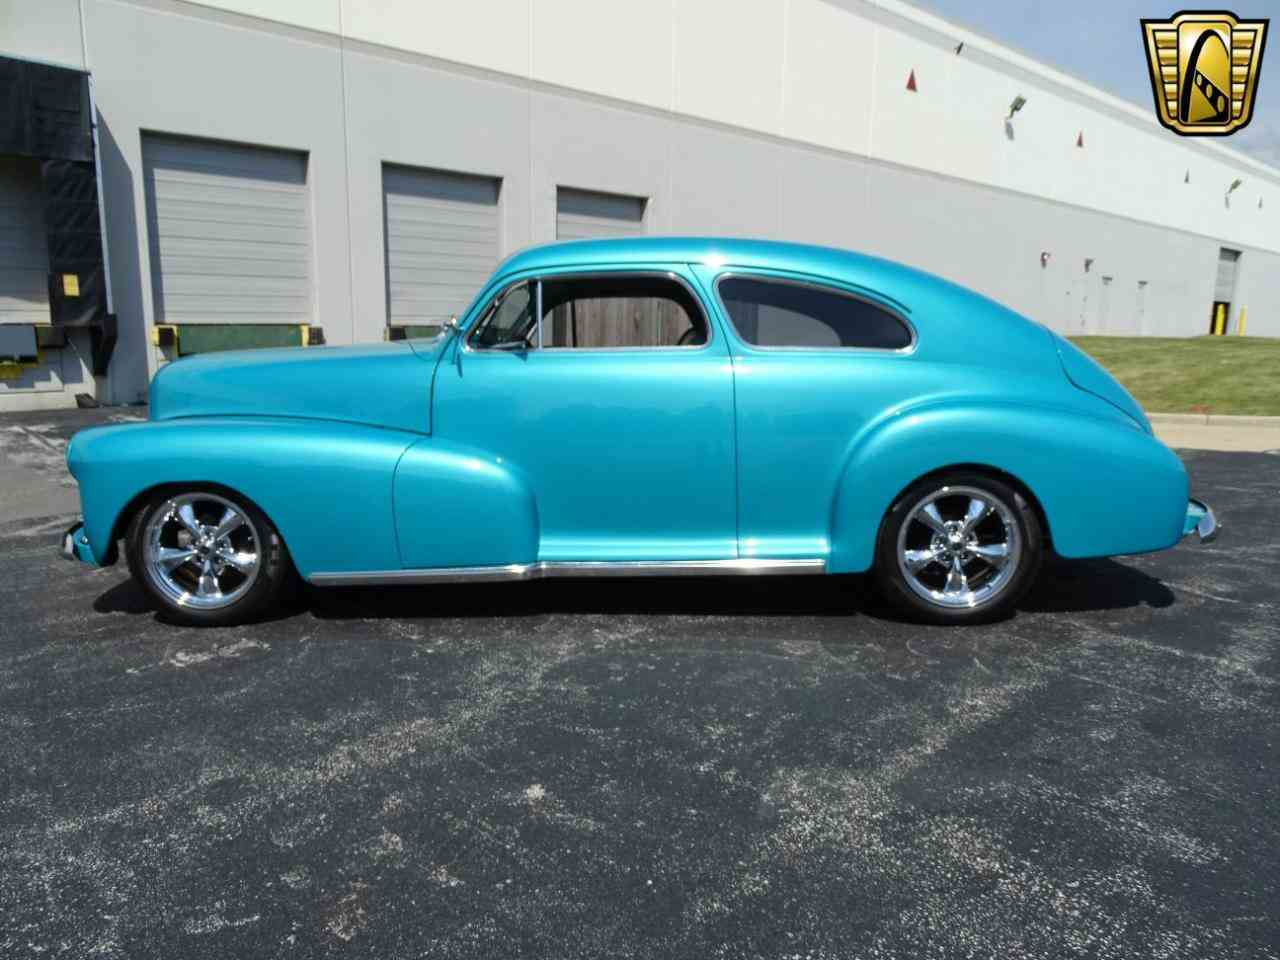 Large Picture of '48 Chevrolet Fleetline located in Illinois - $32,995.00 Offered by Gateway Classic Cars - Chicago - LC3F